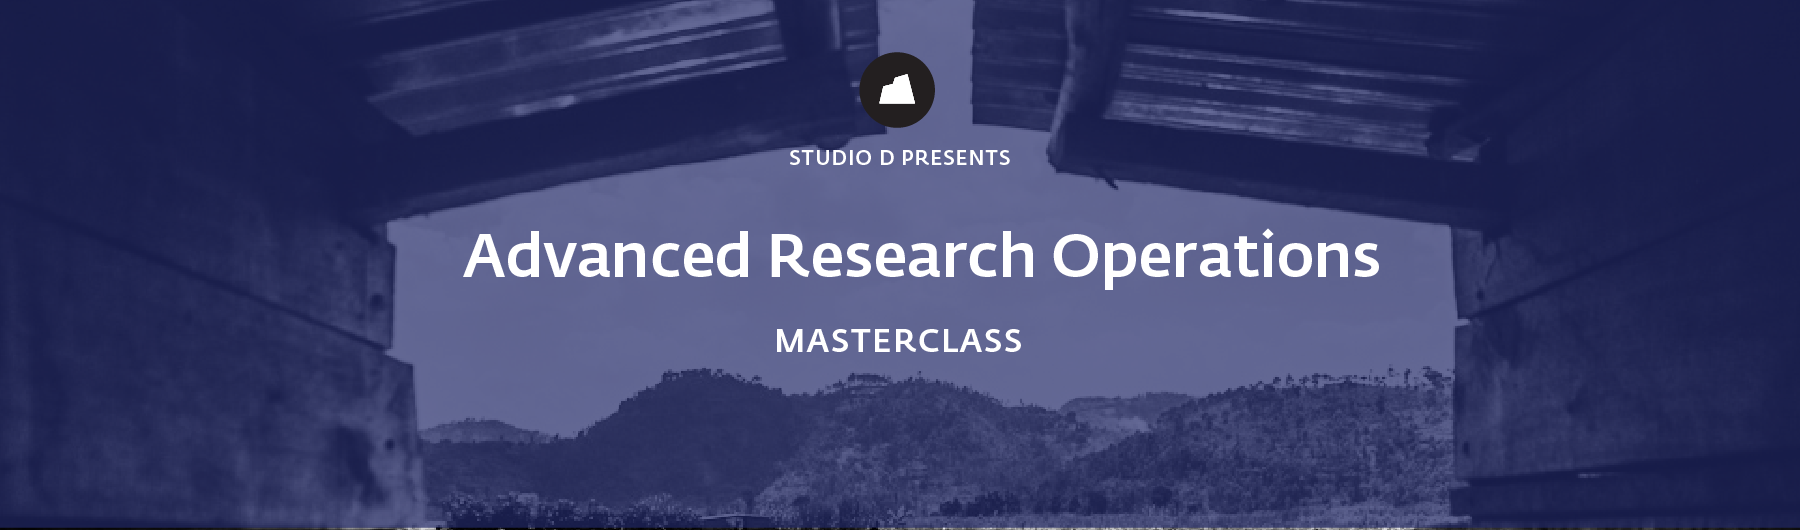 Research Ops Advanced Masterclass, 9 October 2020, Singapore